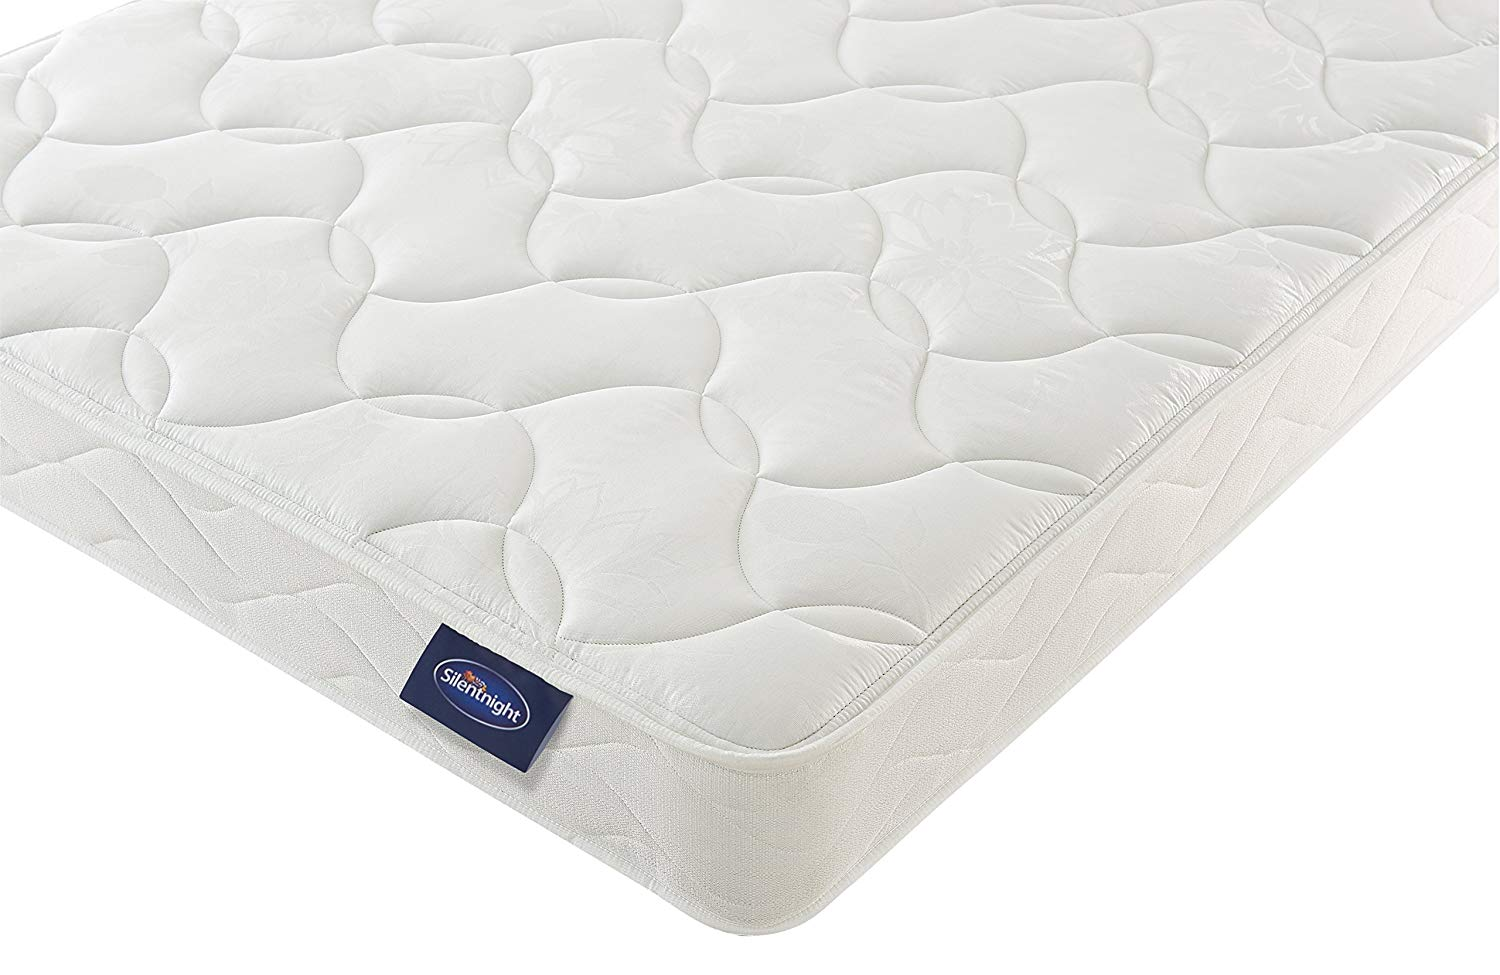 Silentnight Sprung Mattress | Zoned Spring System | Quilted Cover | Firm - Small Double